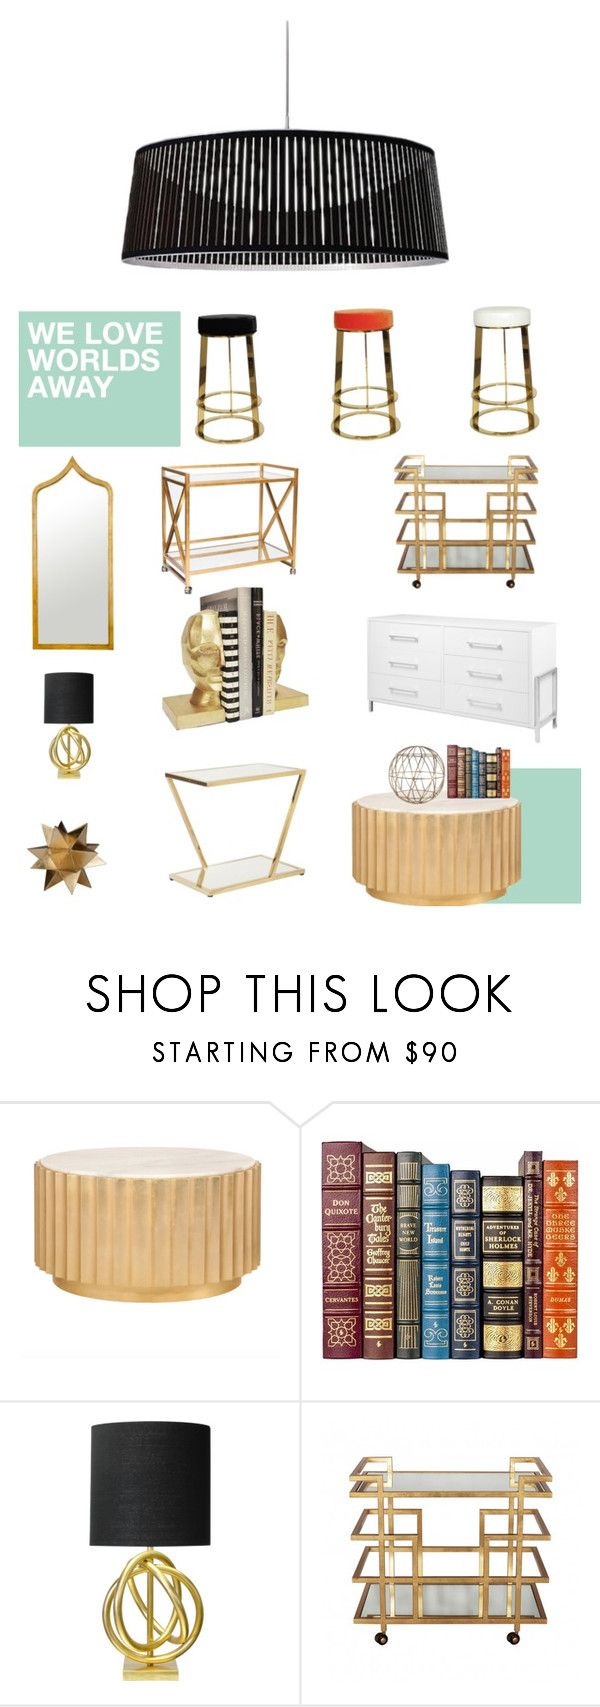 """We Love Worlds Away"" by matthewsfav on Polyvore featuring interior, interiors, interior design, home, home decor, interior decorating and Worlds Away"